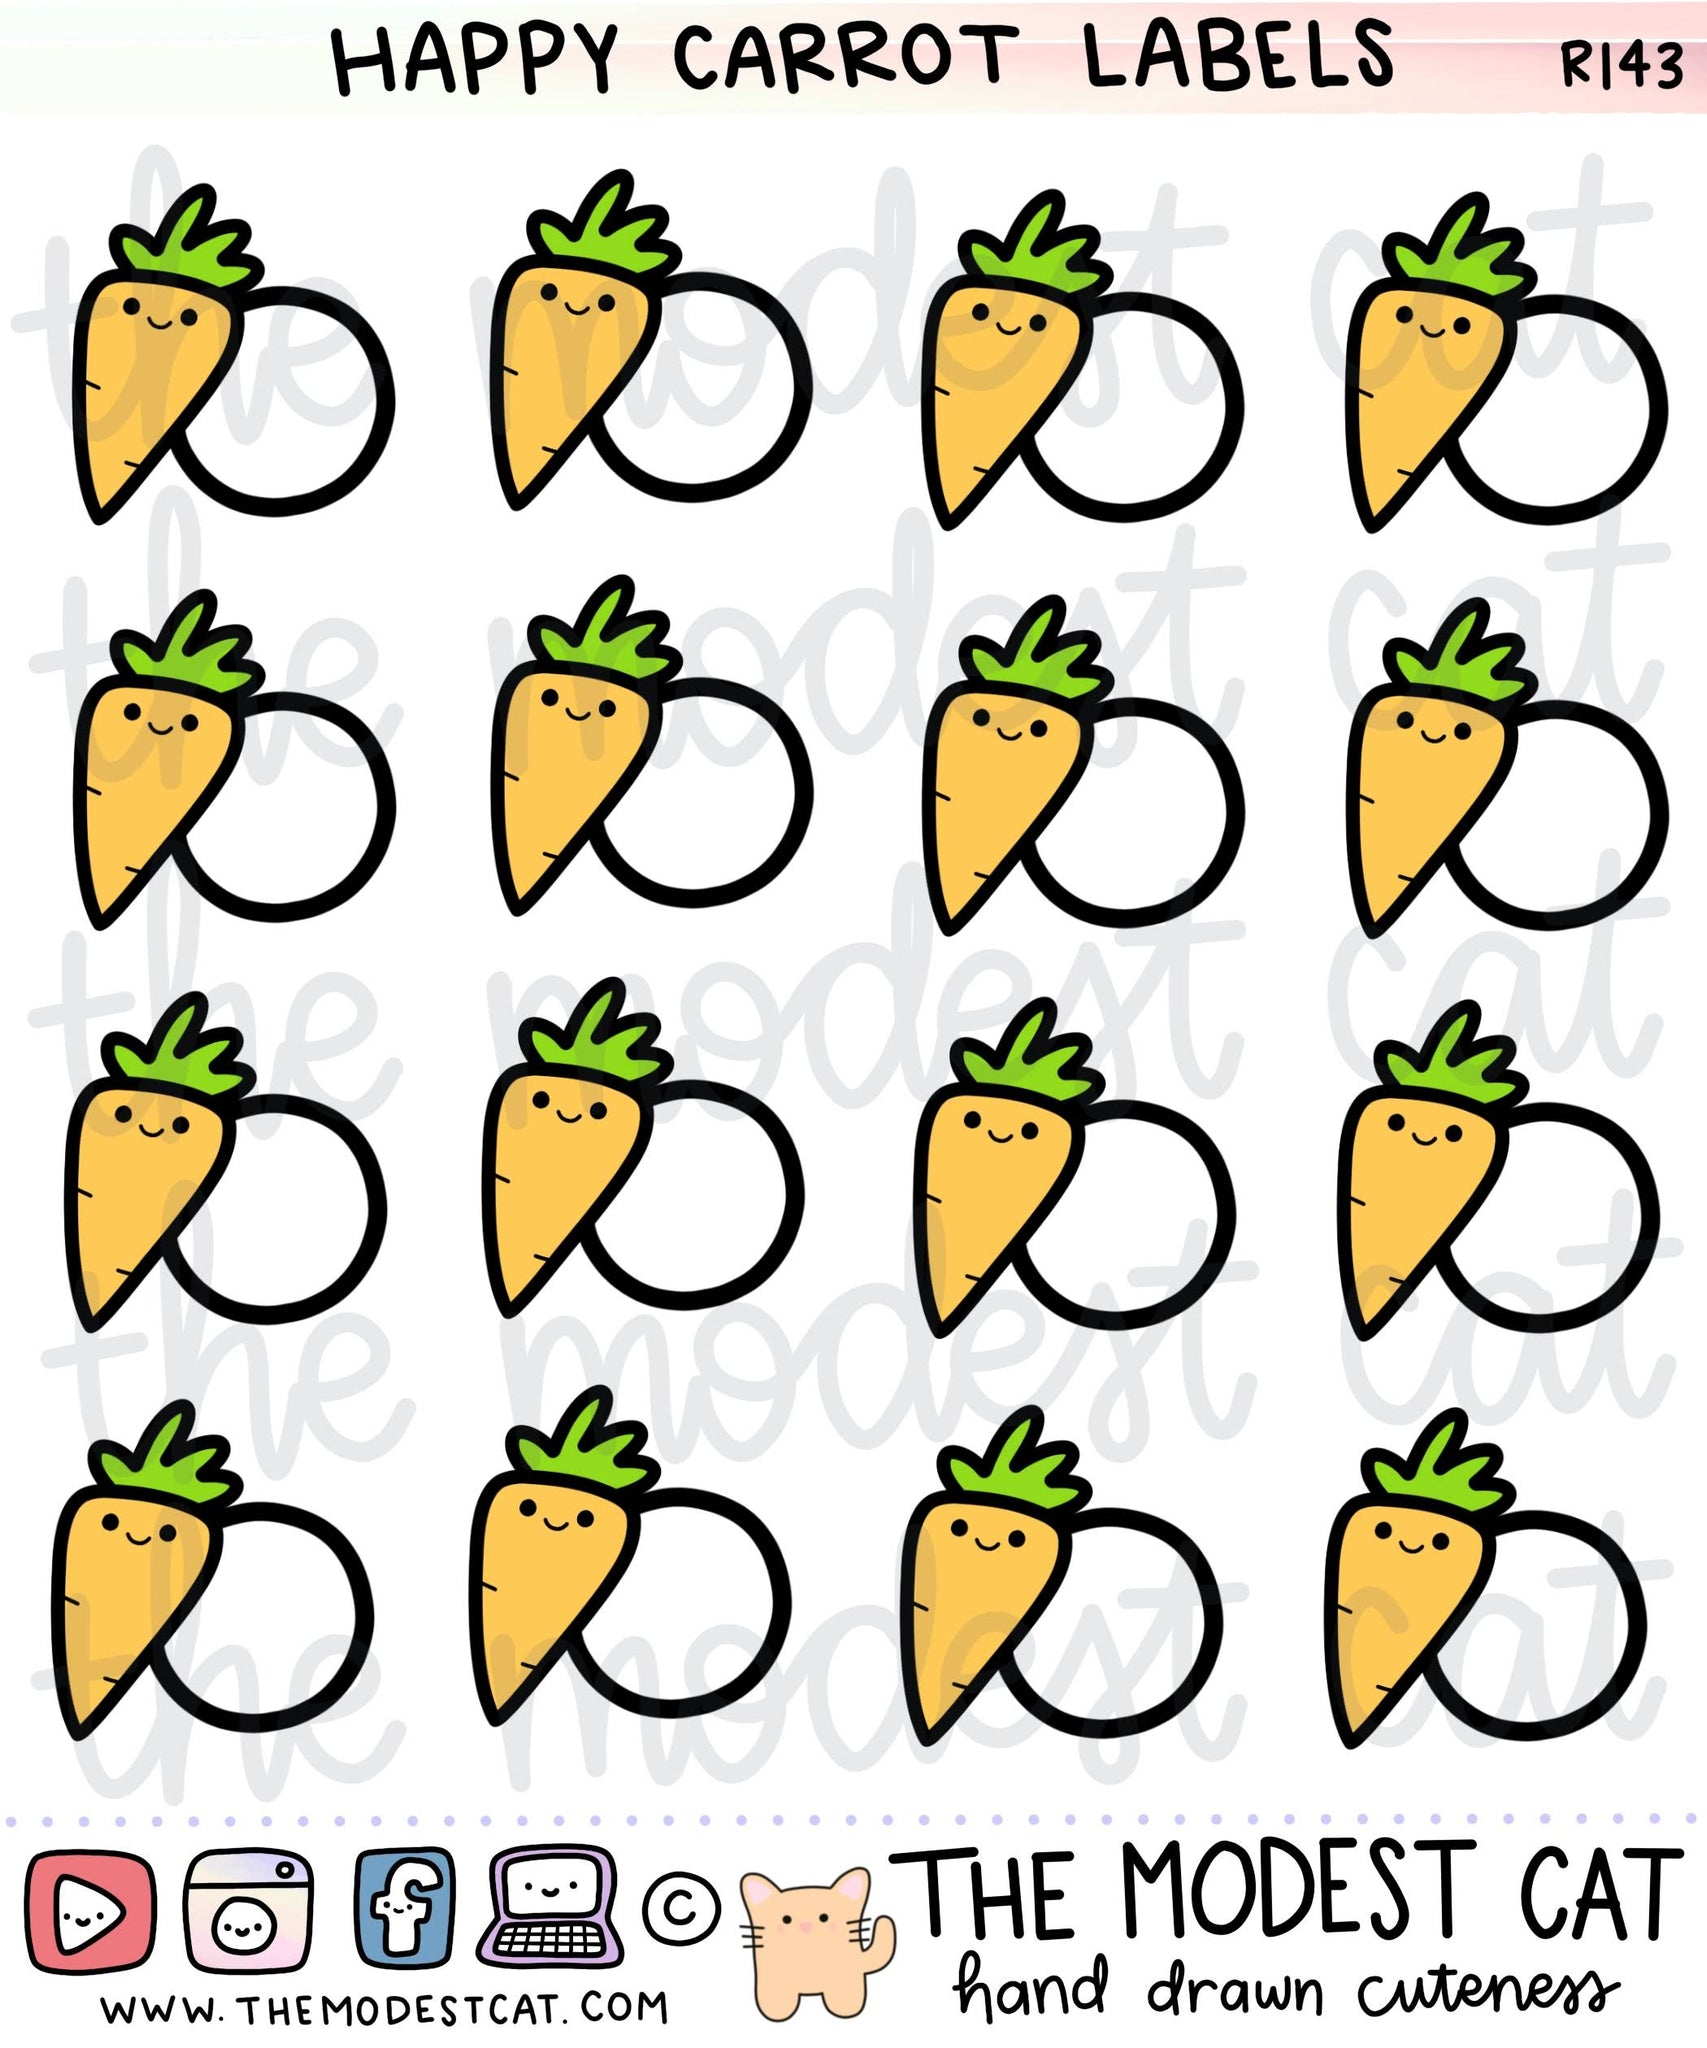 Happy Carrot Labels (R143)